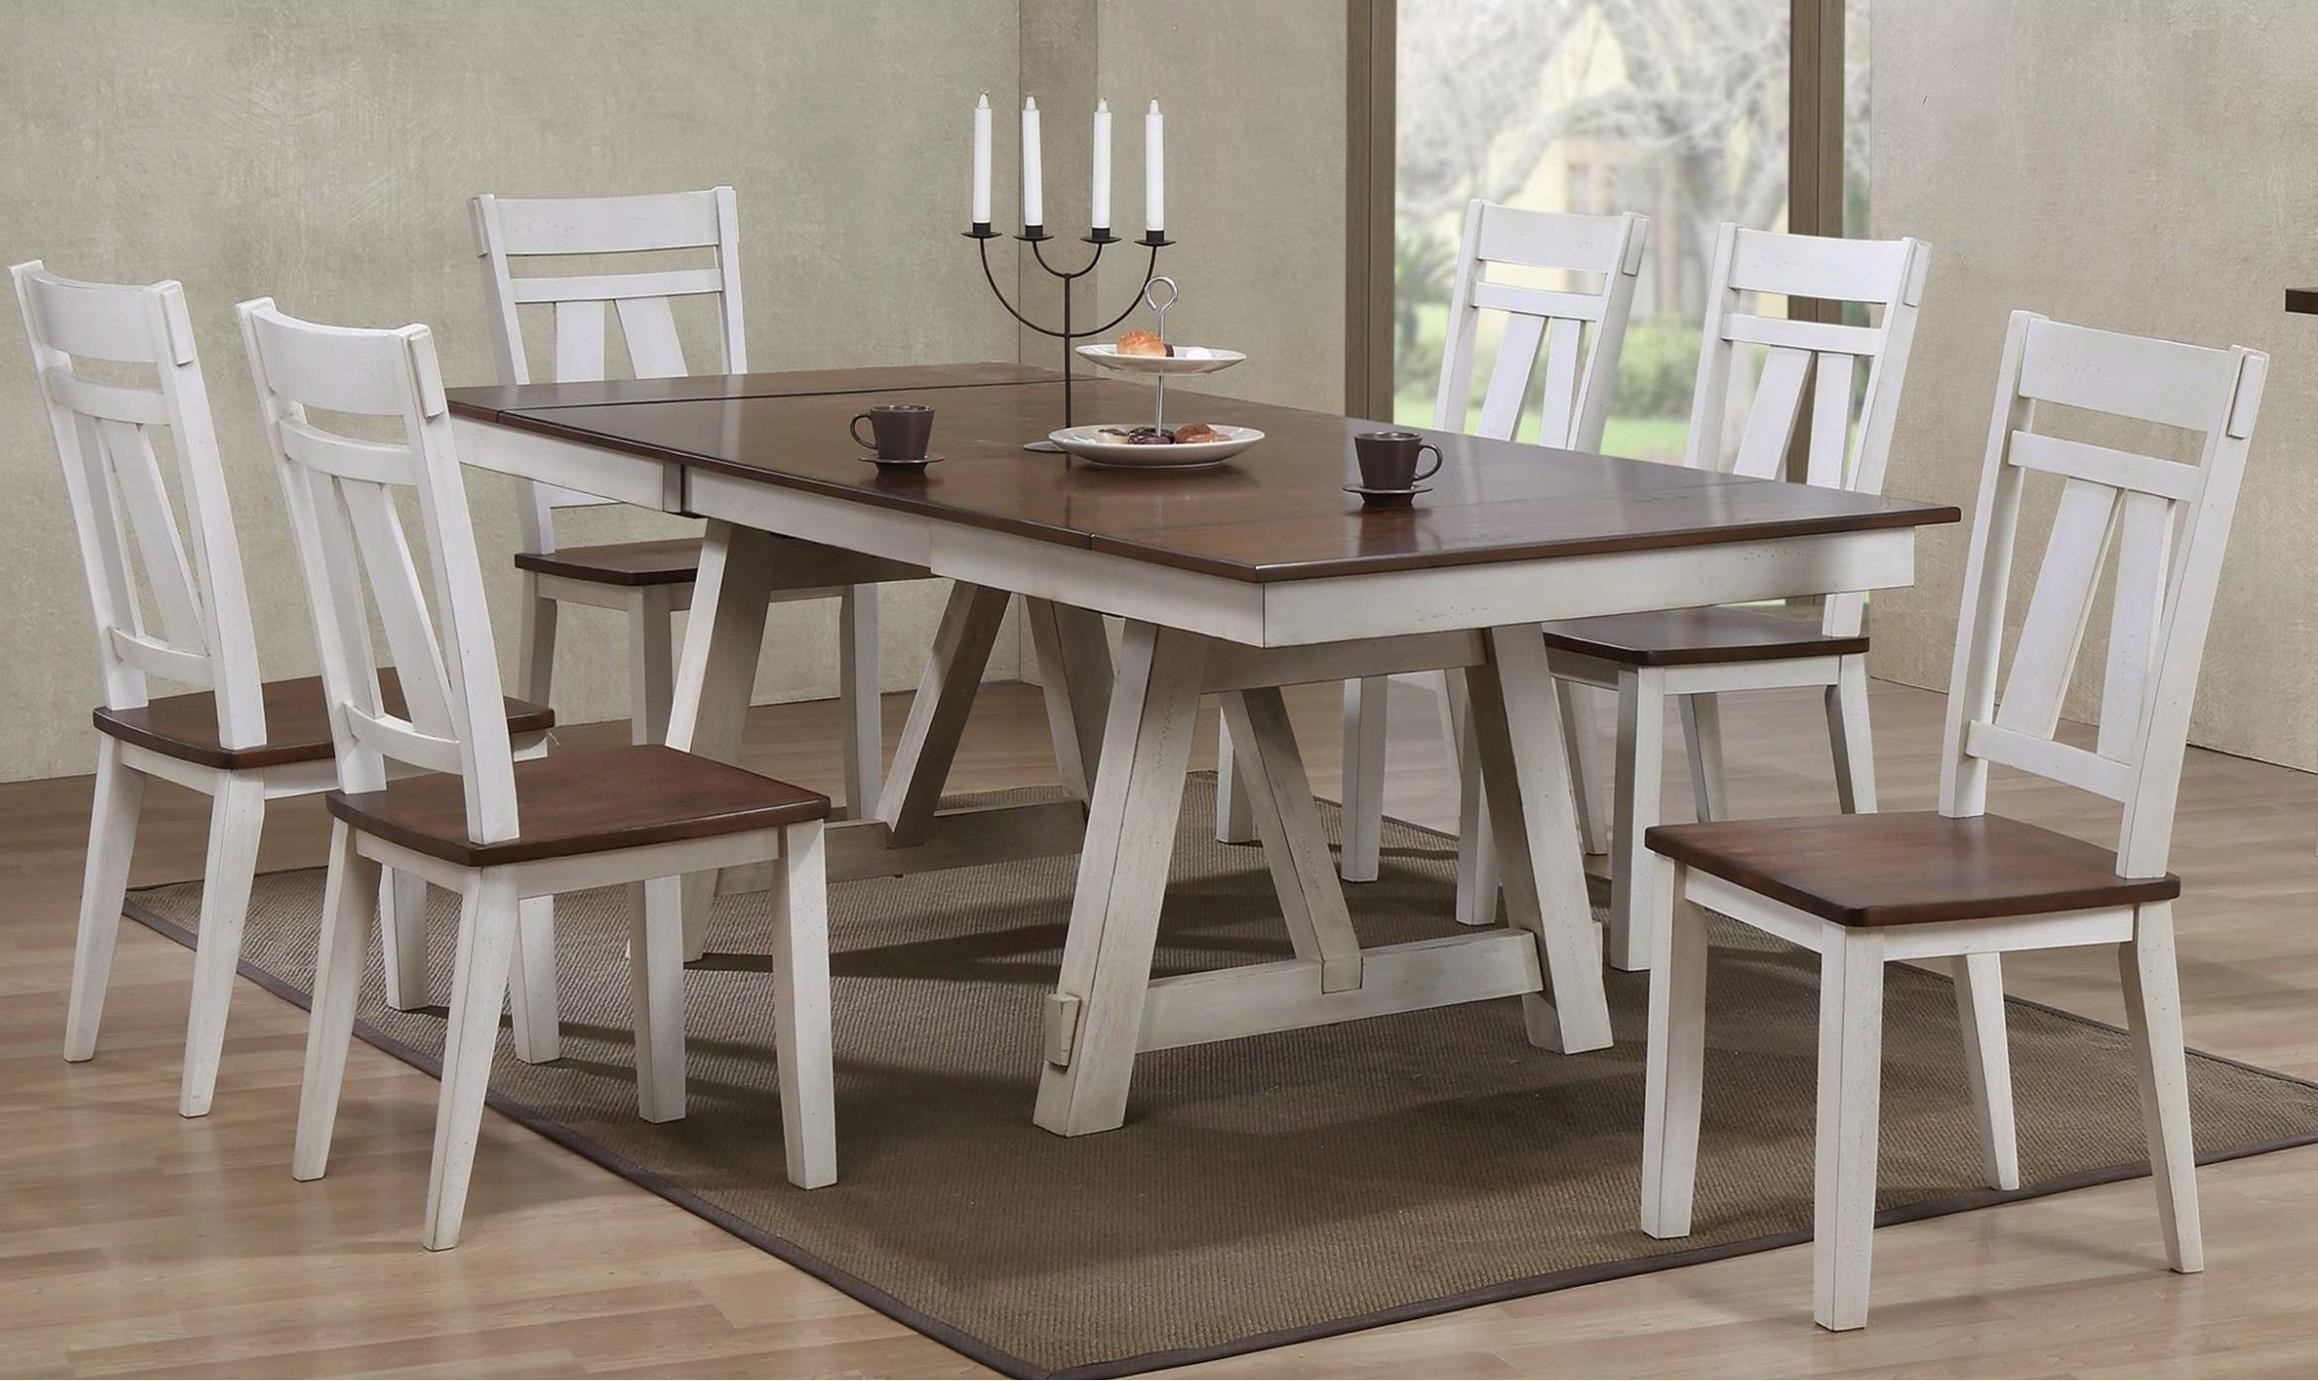 Bernards Winslow7-Piece Dining Table Set ...  sc 1 st  Miskelly Furniture & Winslow 7-Piece Two-Tone Refectory Table Set | Miskelly Furniture ...